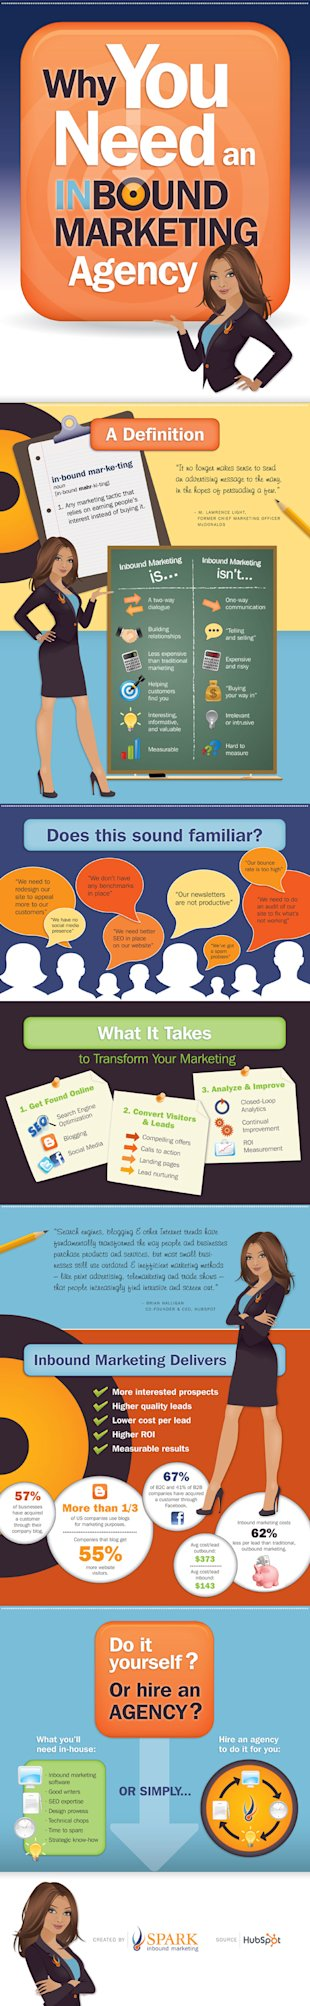 Inbound Marketing: An Infographic image Inbound Marketing Infographic